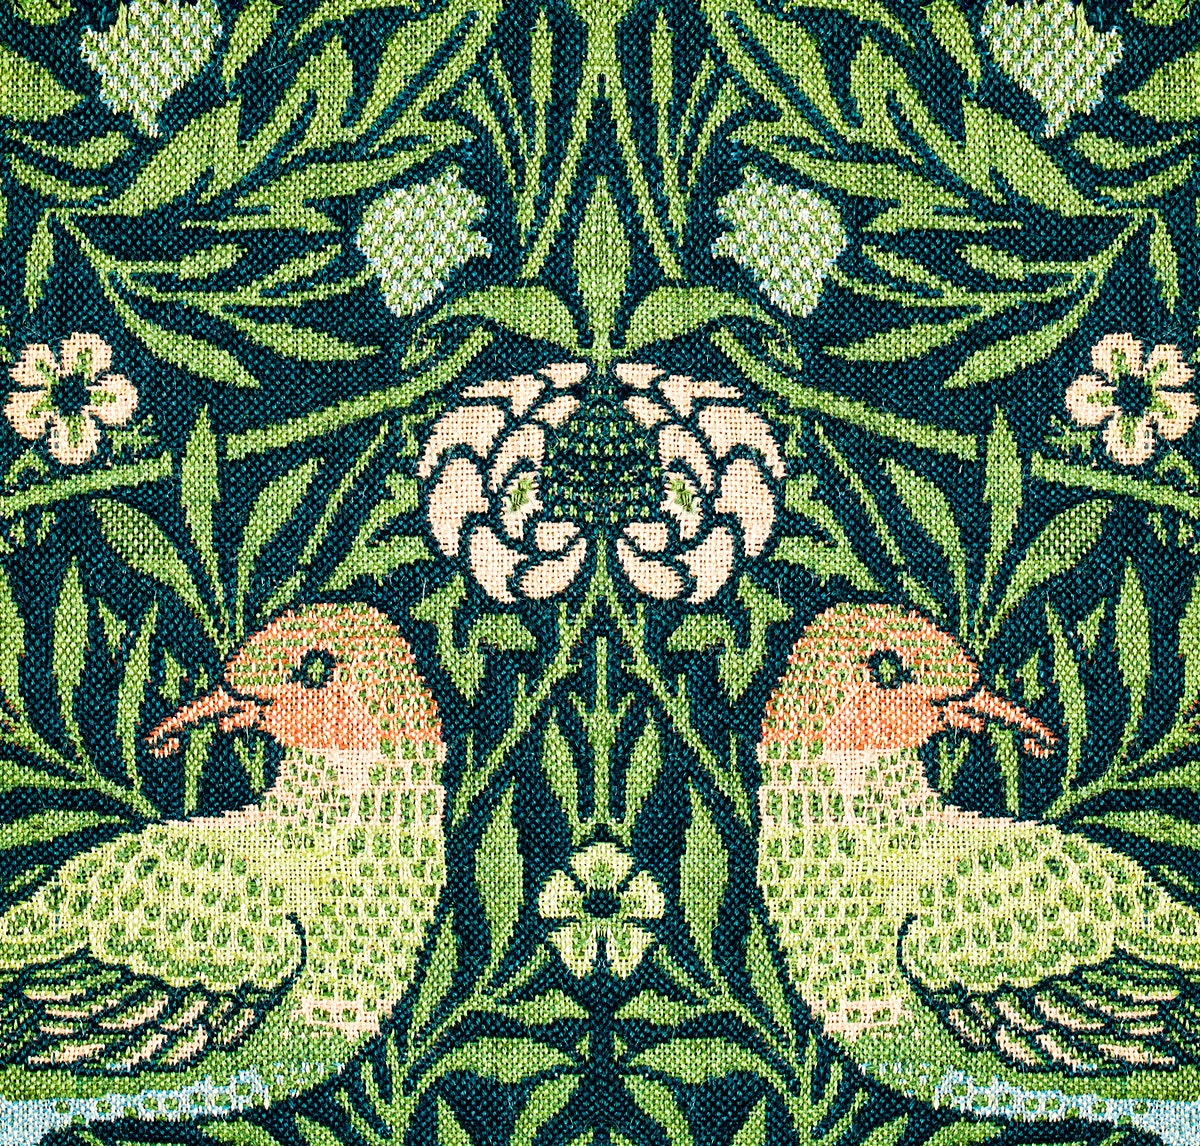 Fragment pattern (1876) by William Morris. Original from The Smithsonian Institution. Digitally enhanced by rawpixel.